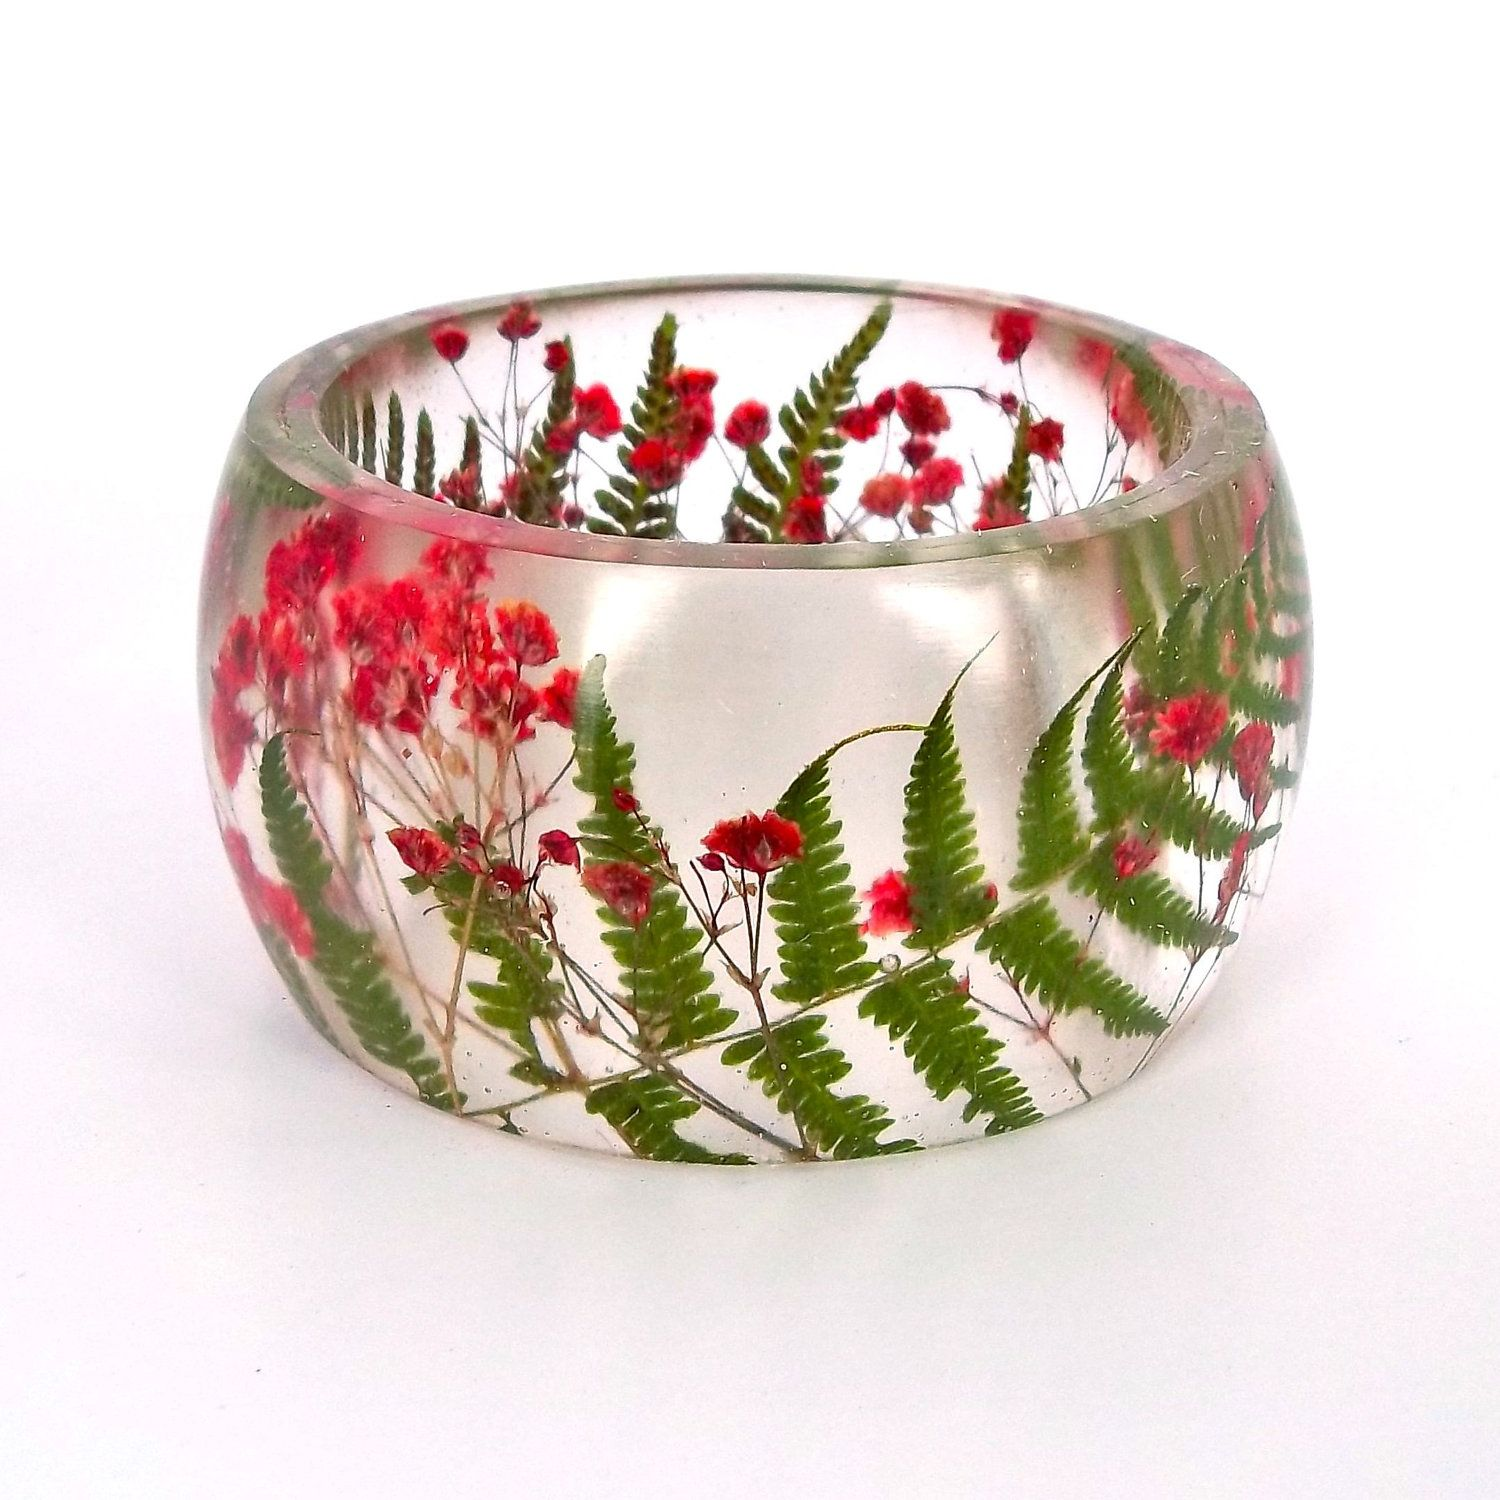 a bangles the resi you resin tutorial img bangle for funky tallulah click does showing stripe here how using to make hula psychedelic tint this